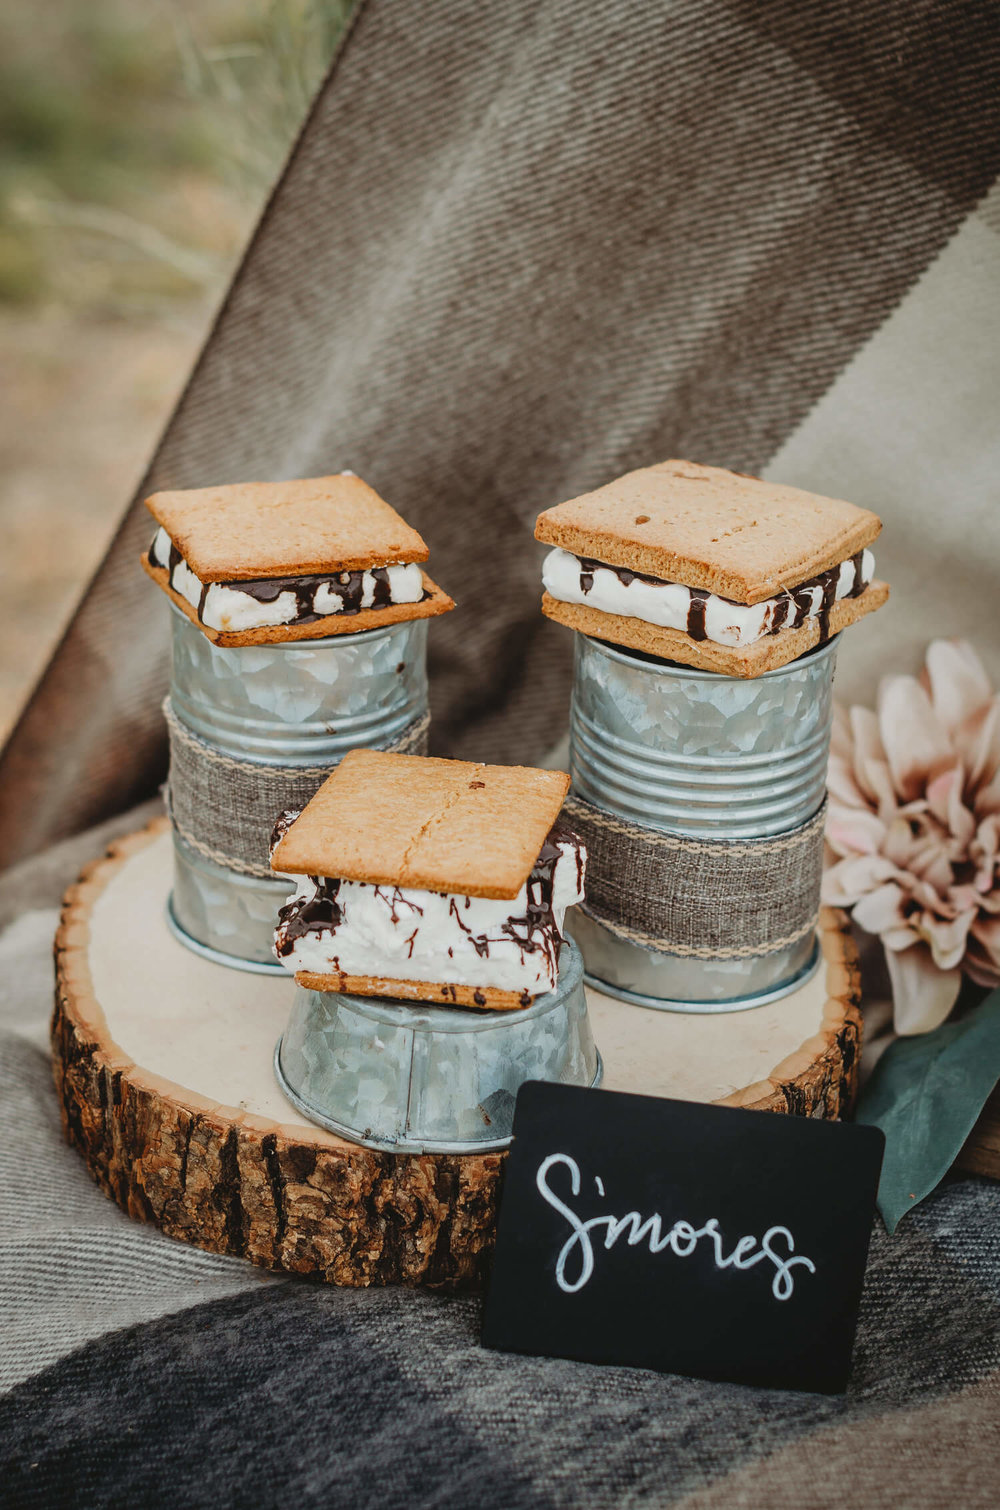 The best display for s'mores at a rustic bridal shower - a wooden charger with s'mores on inverted galvanized pails at different heights. Click to see many more bridal shower ideas from this Fall in Love party theme. Created by party stylist Mint Event Design. #bridalshowers #bridalshowerideas #rusticwedding #rusticbridalshower #bridalshowerdecor #farmwedding #partyideas #fallbridalshower #smores #bridaslshowerdessert #minidesserts